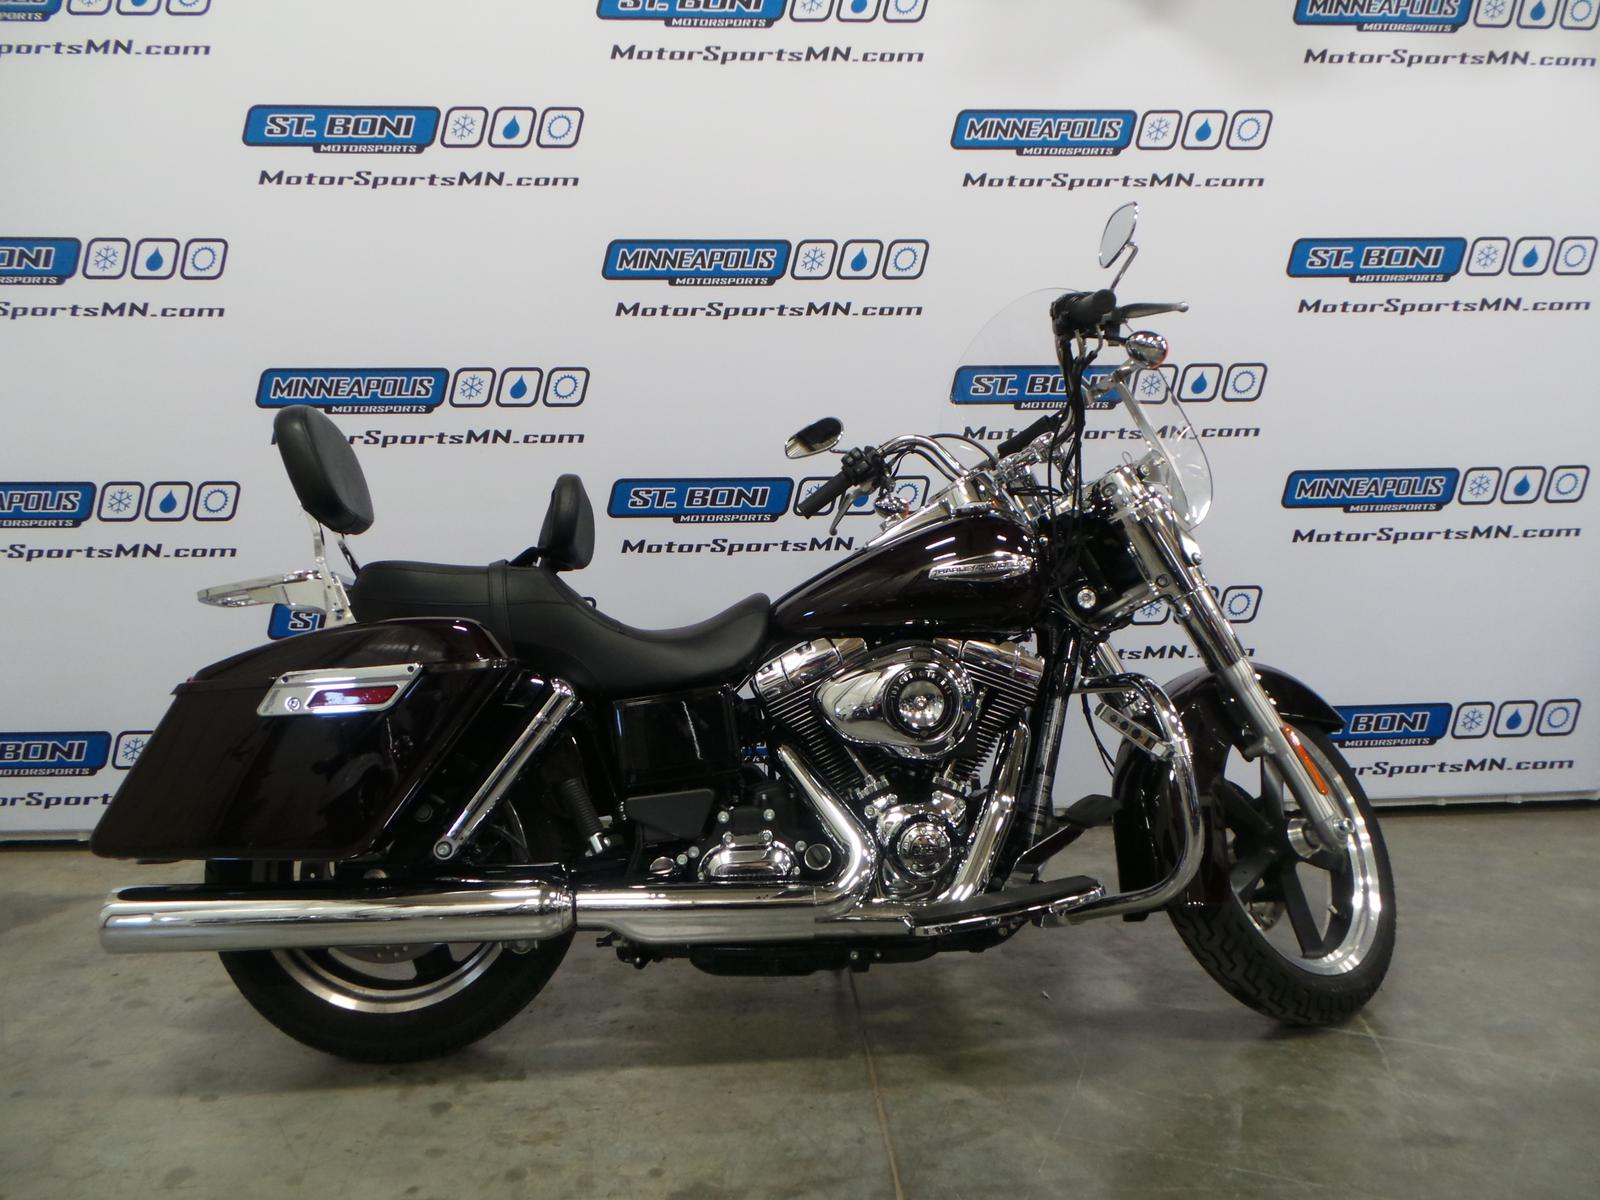 2014 Harley Davidson Switchback Minneapolis St Paul